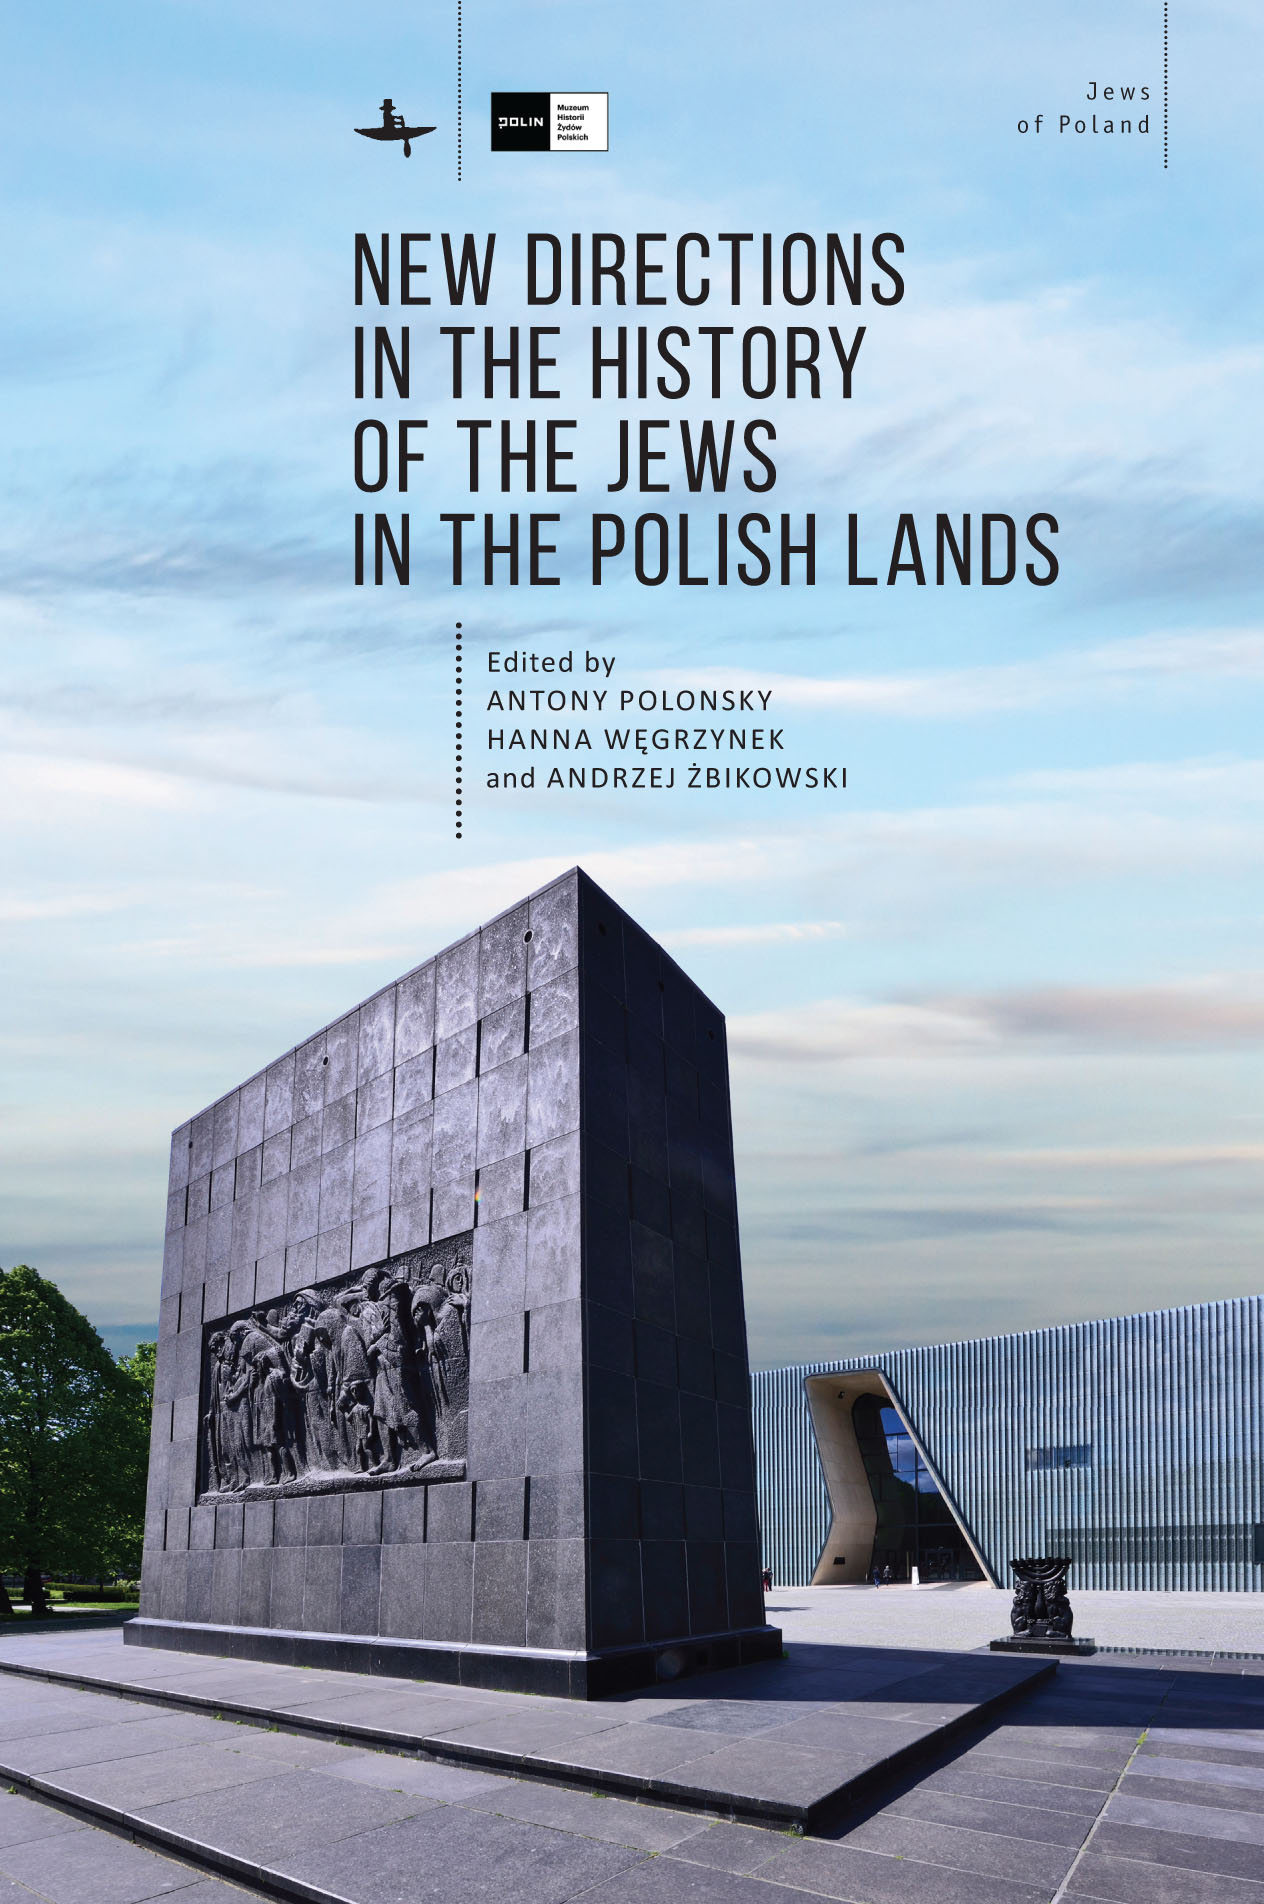 New Directions in the History of the Jews in the Polish Lands   Edited by  Antony Polonsky, Hanna Węgrzynek and Andrzej Żbikowski   Read on JSTOR  |  Purchase book